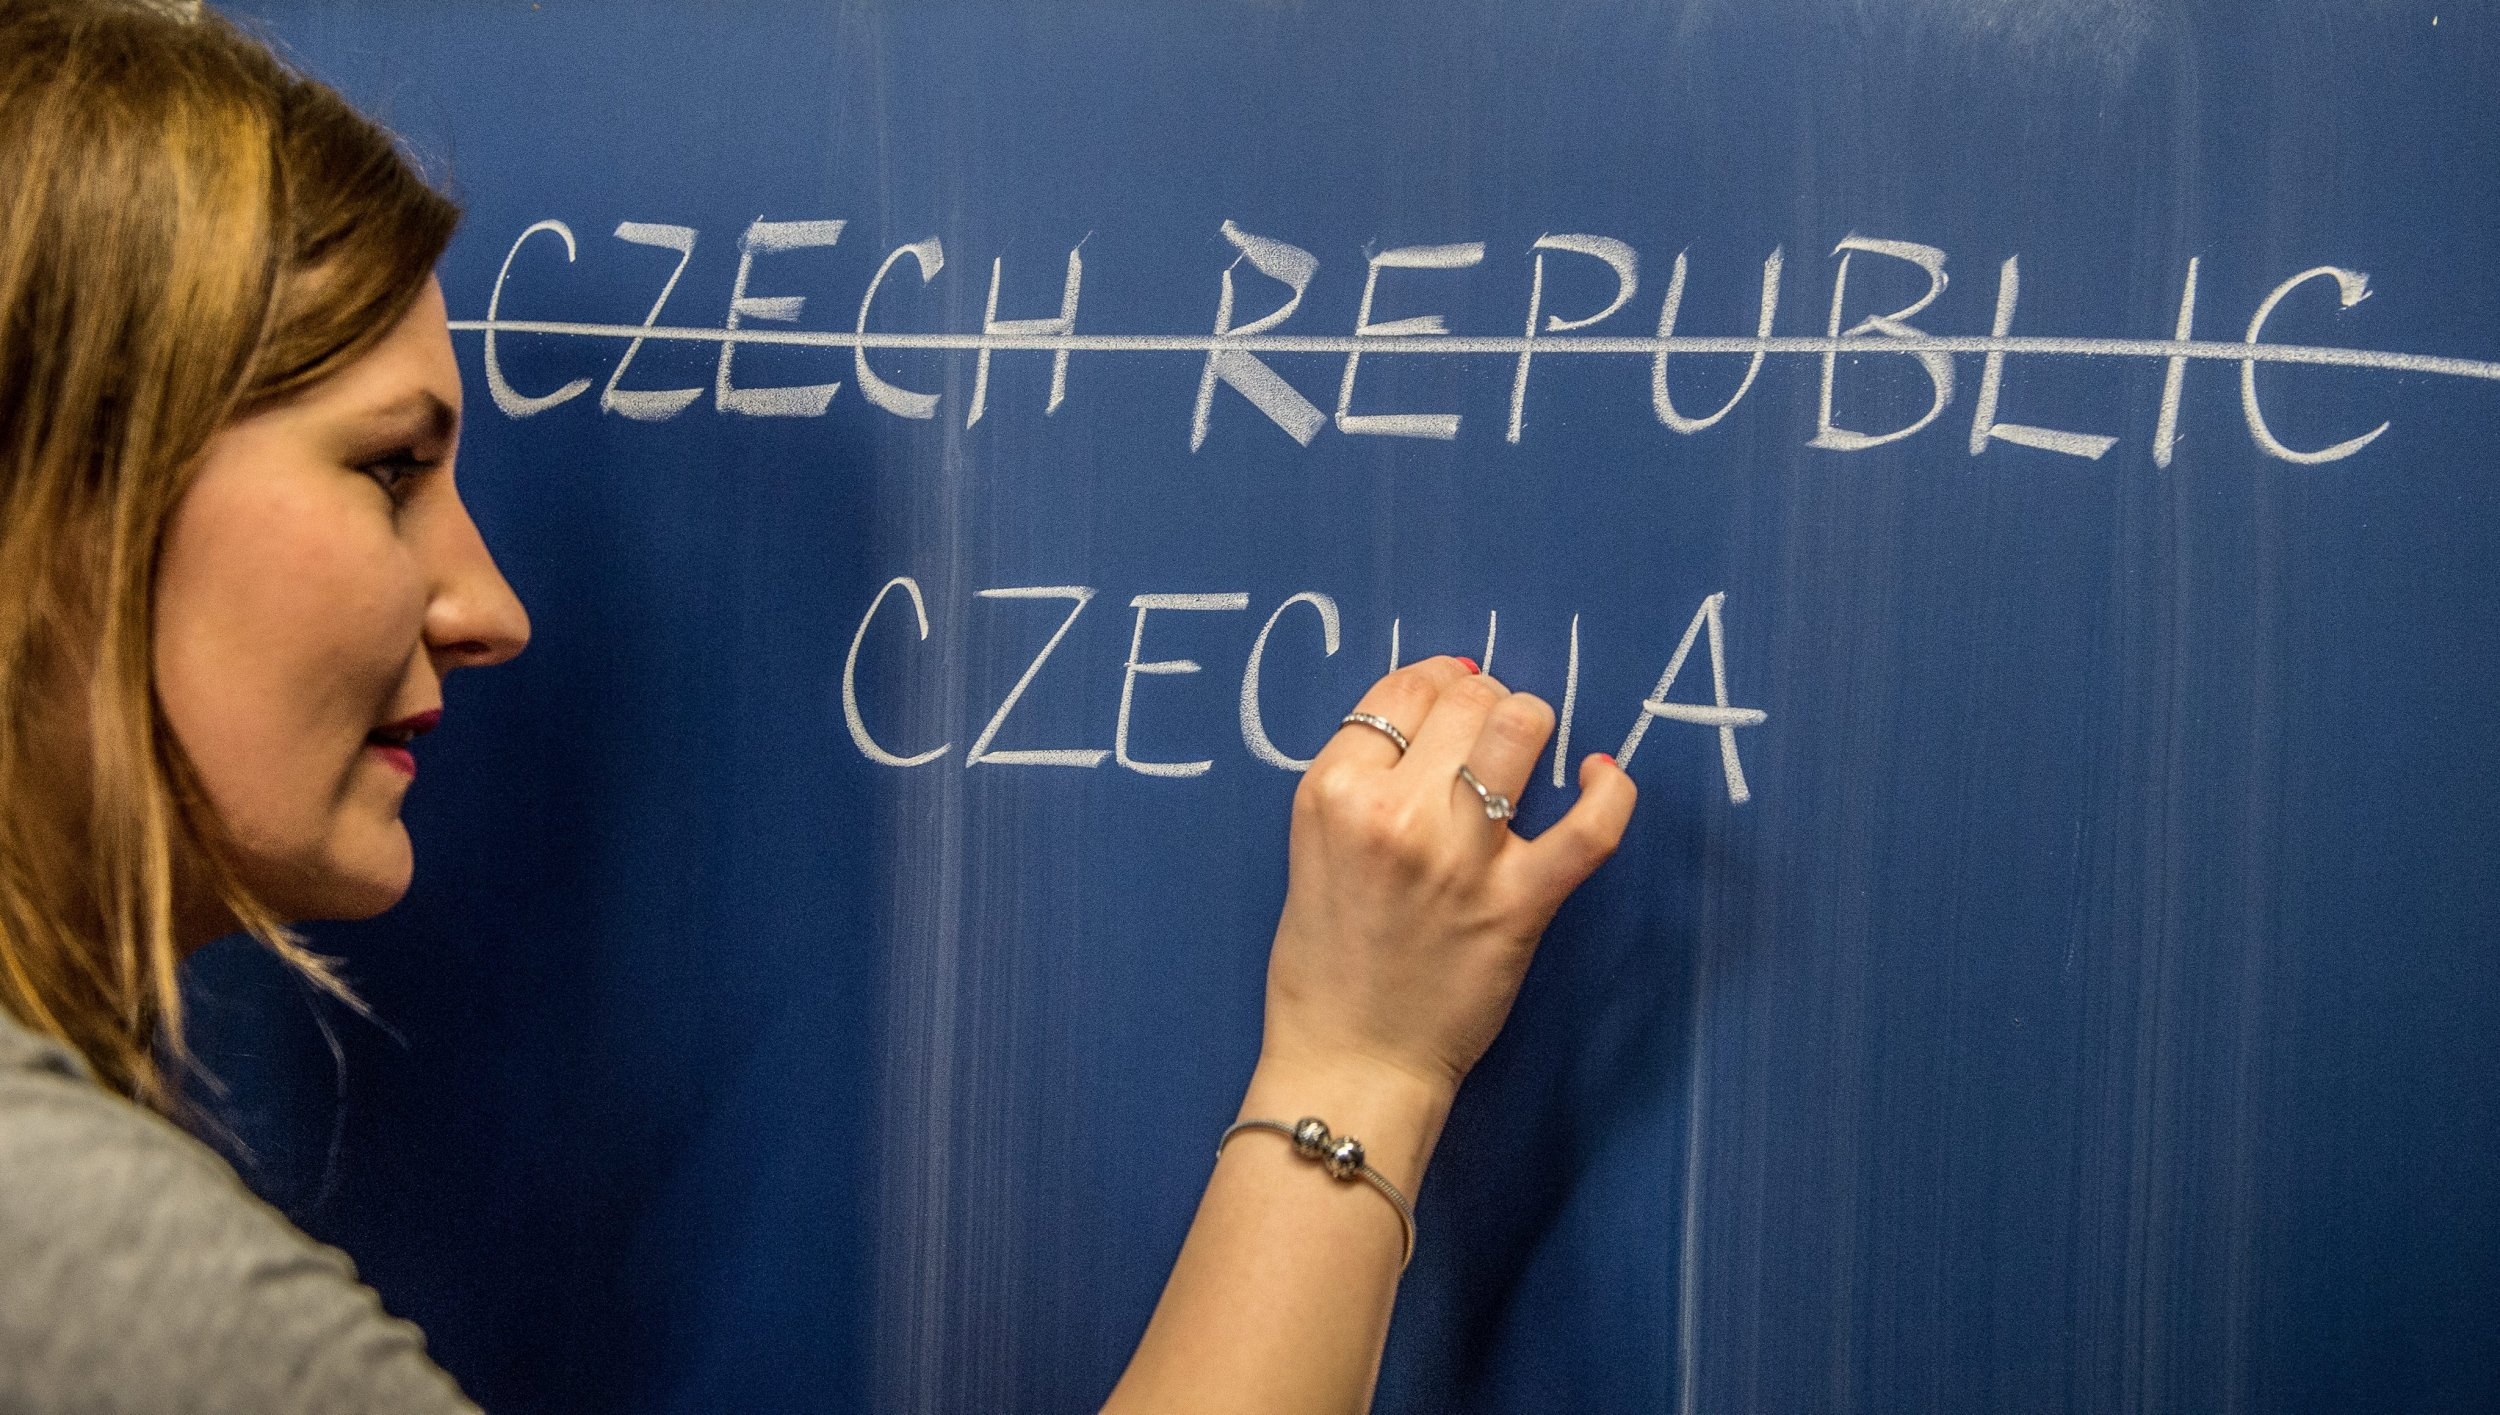 The Czech Republic might change its name and everyone is making terrible jokes